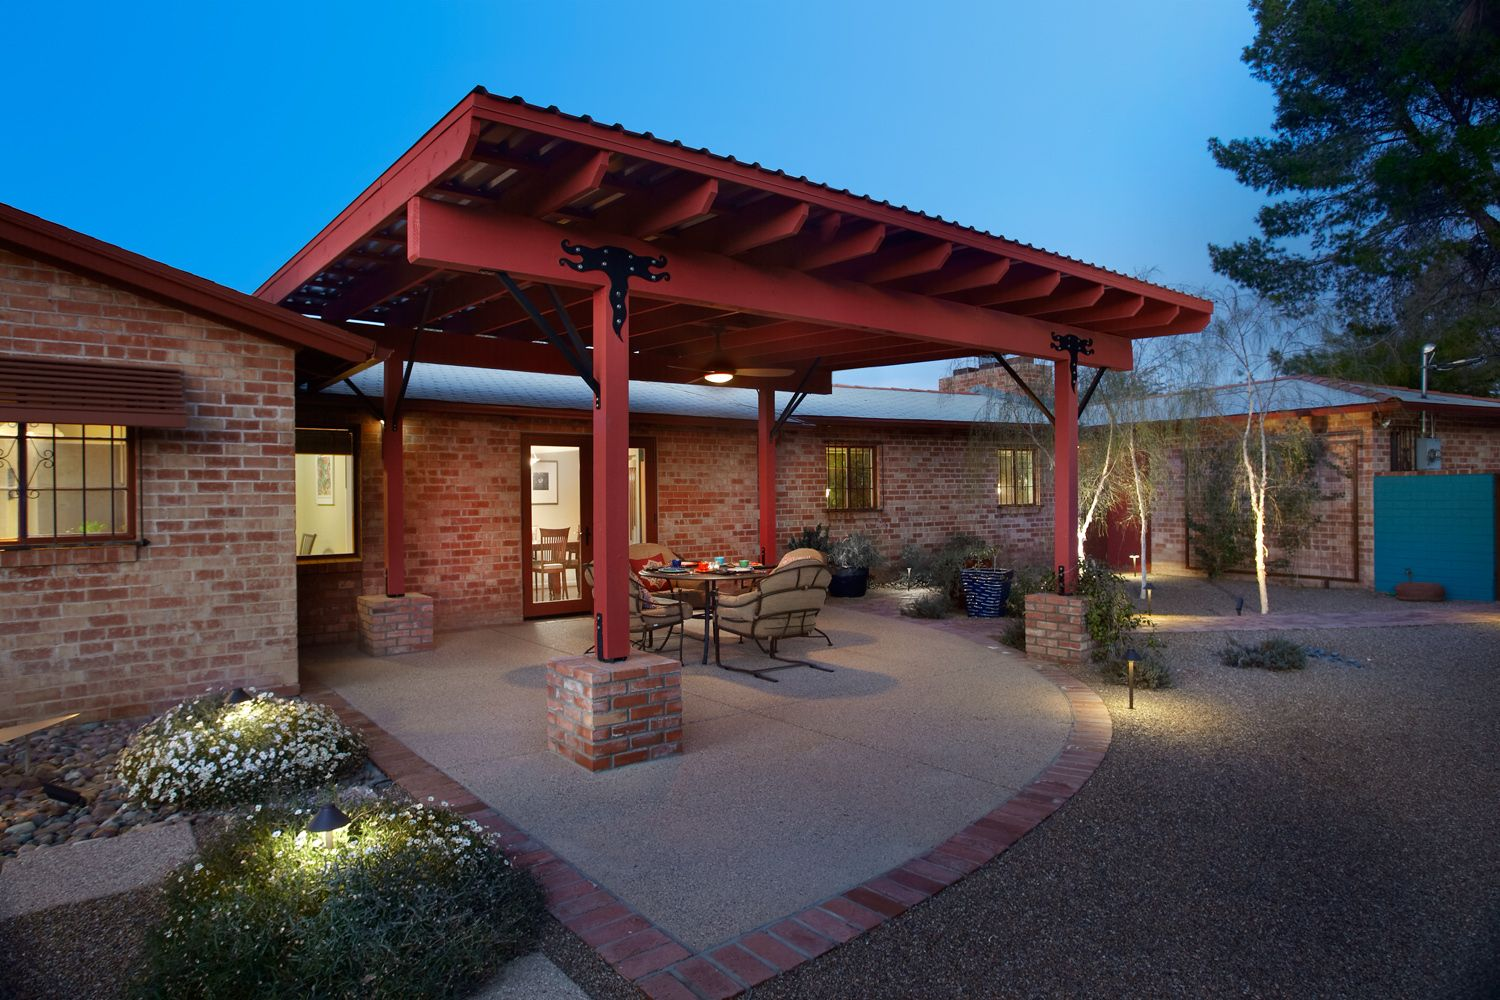 Ramada design plans ramada backyard remodel for Pool design tucson